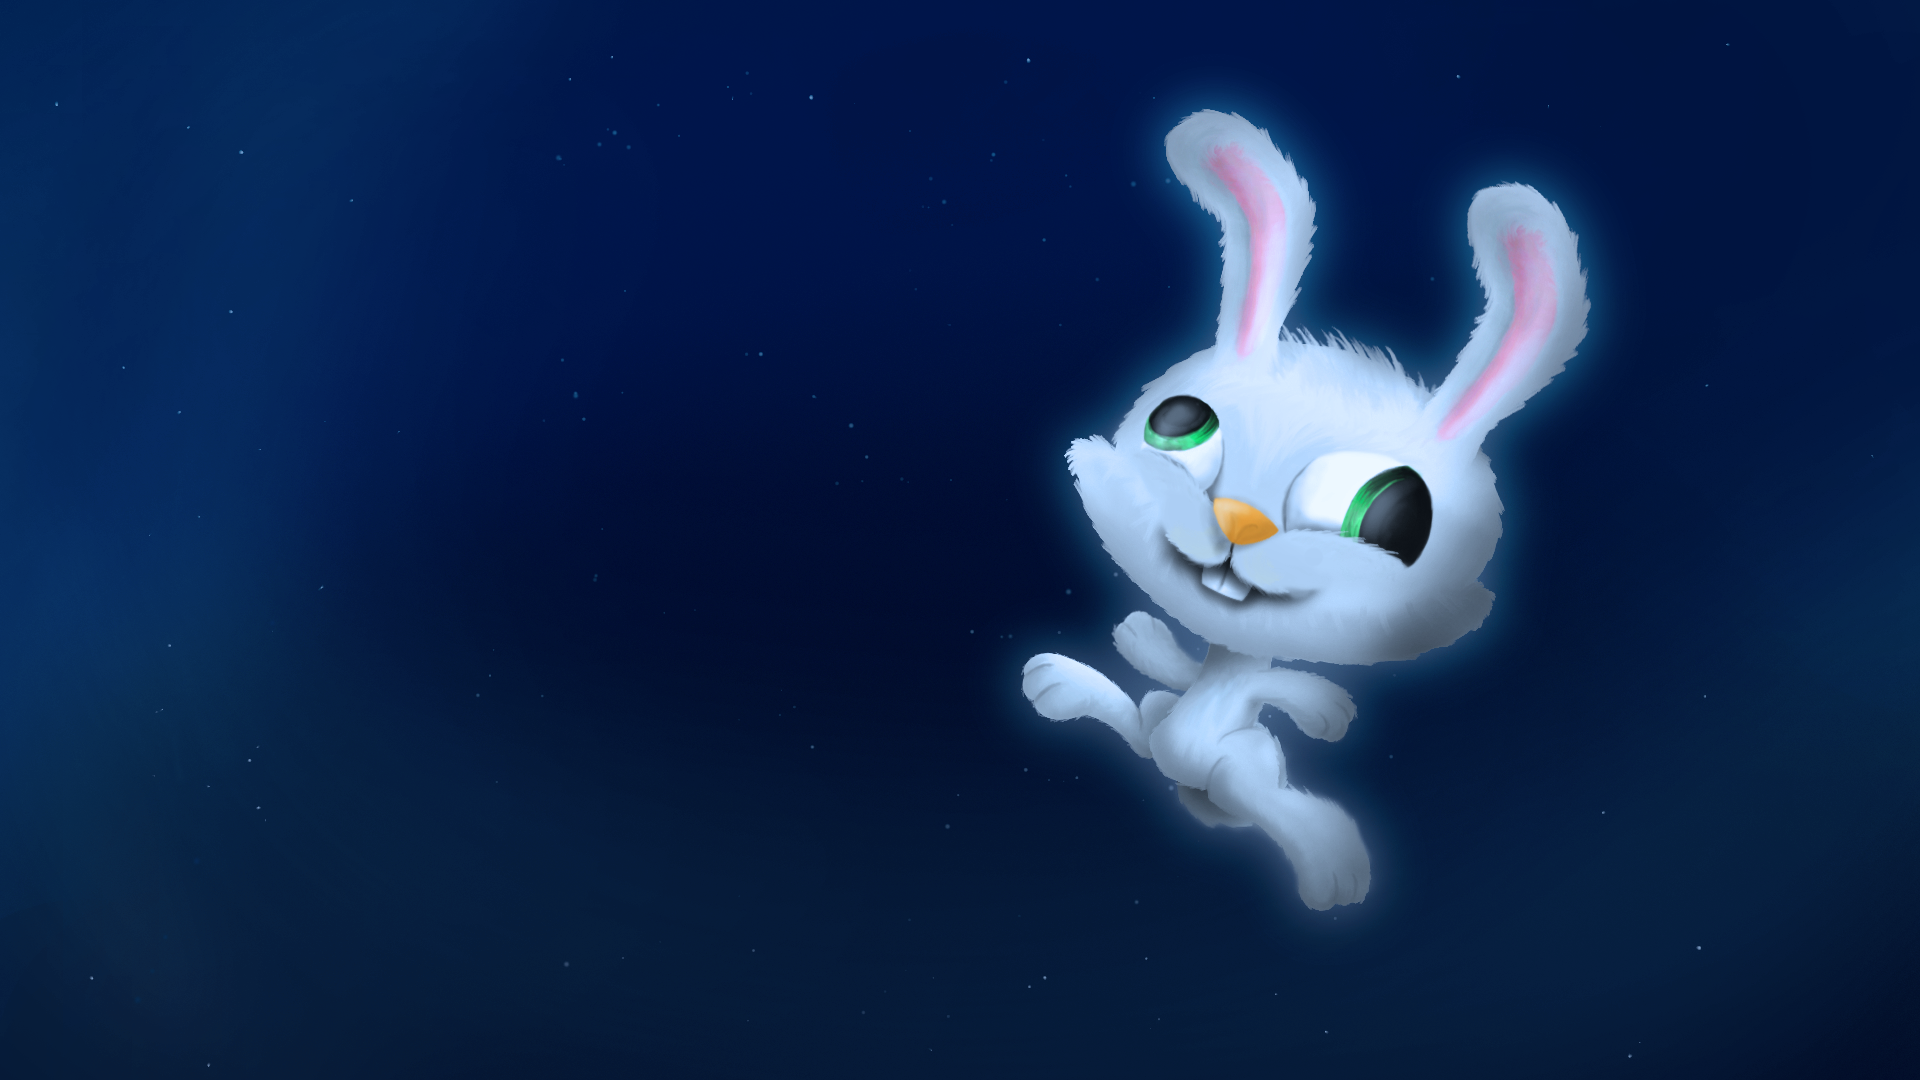 Happy lil rabbit in space